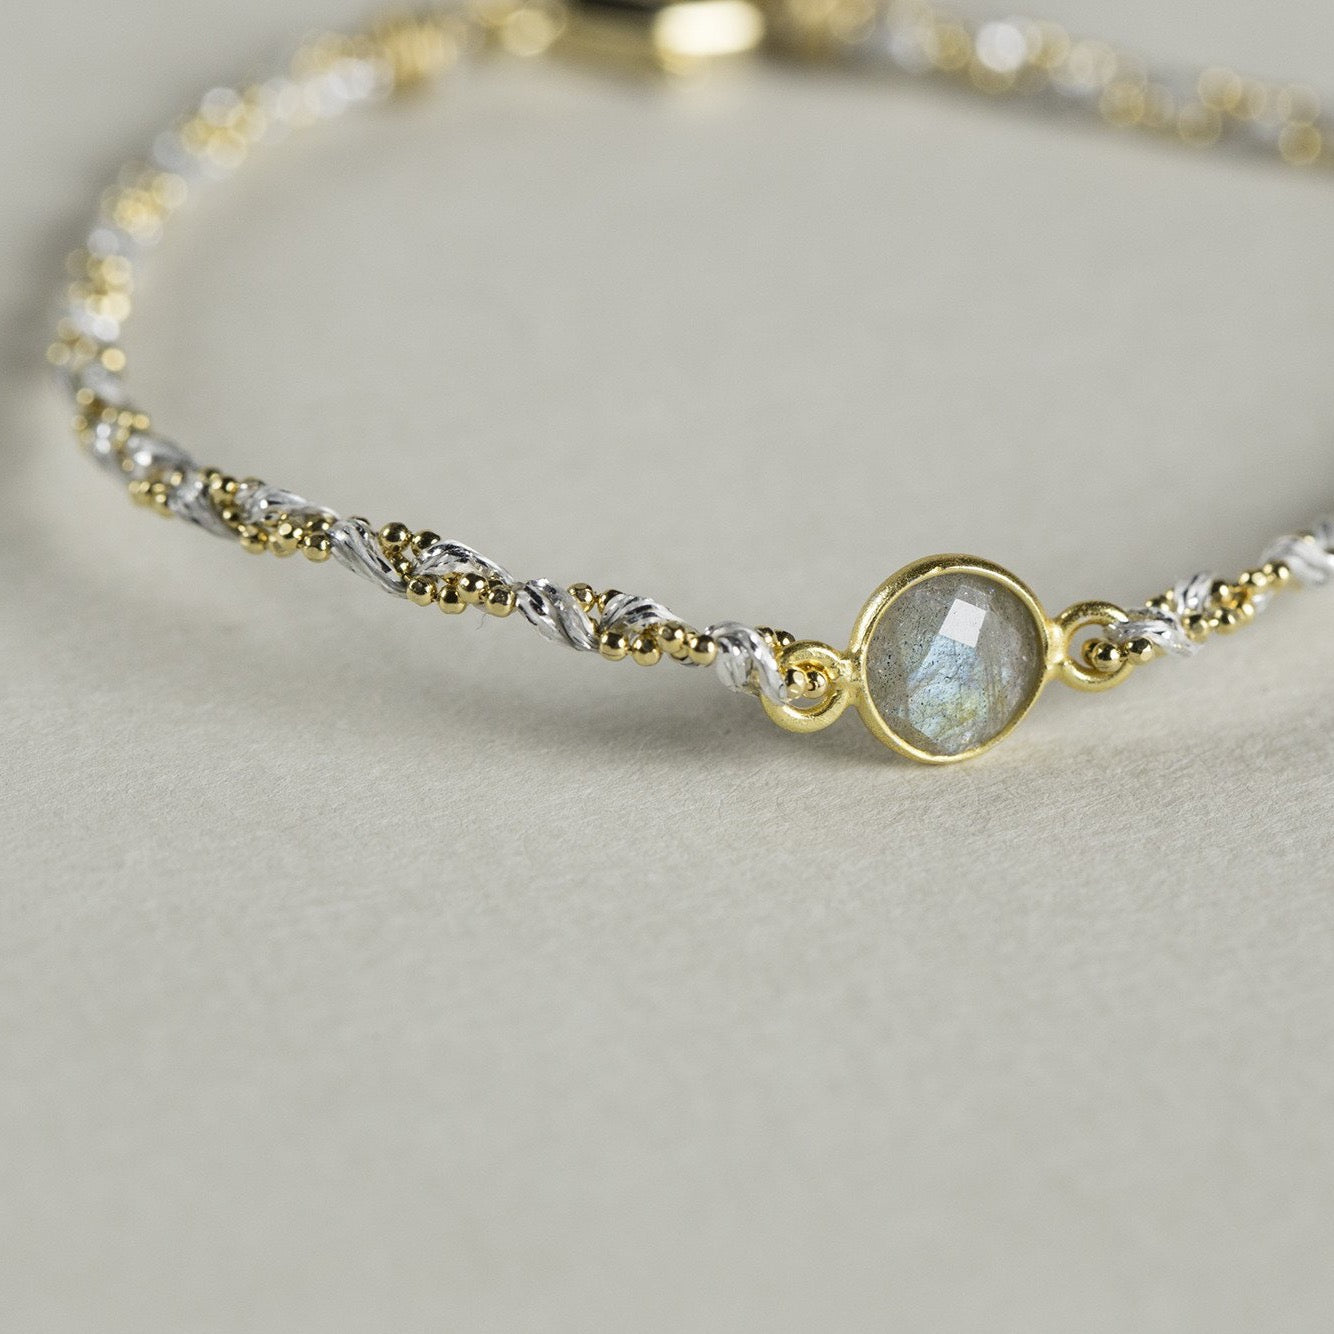 an atmospheric labradorite bracelet that has proved a hit with our customers